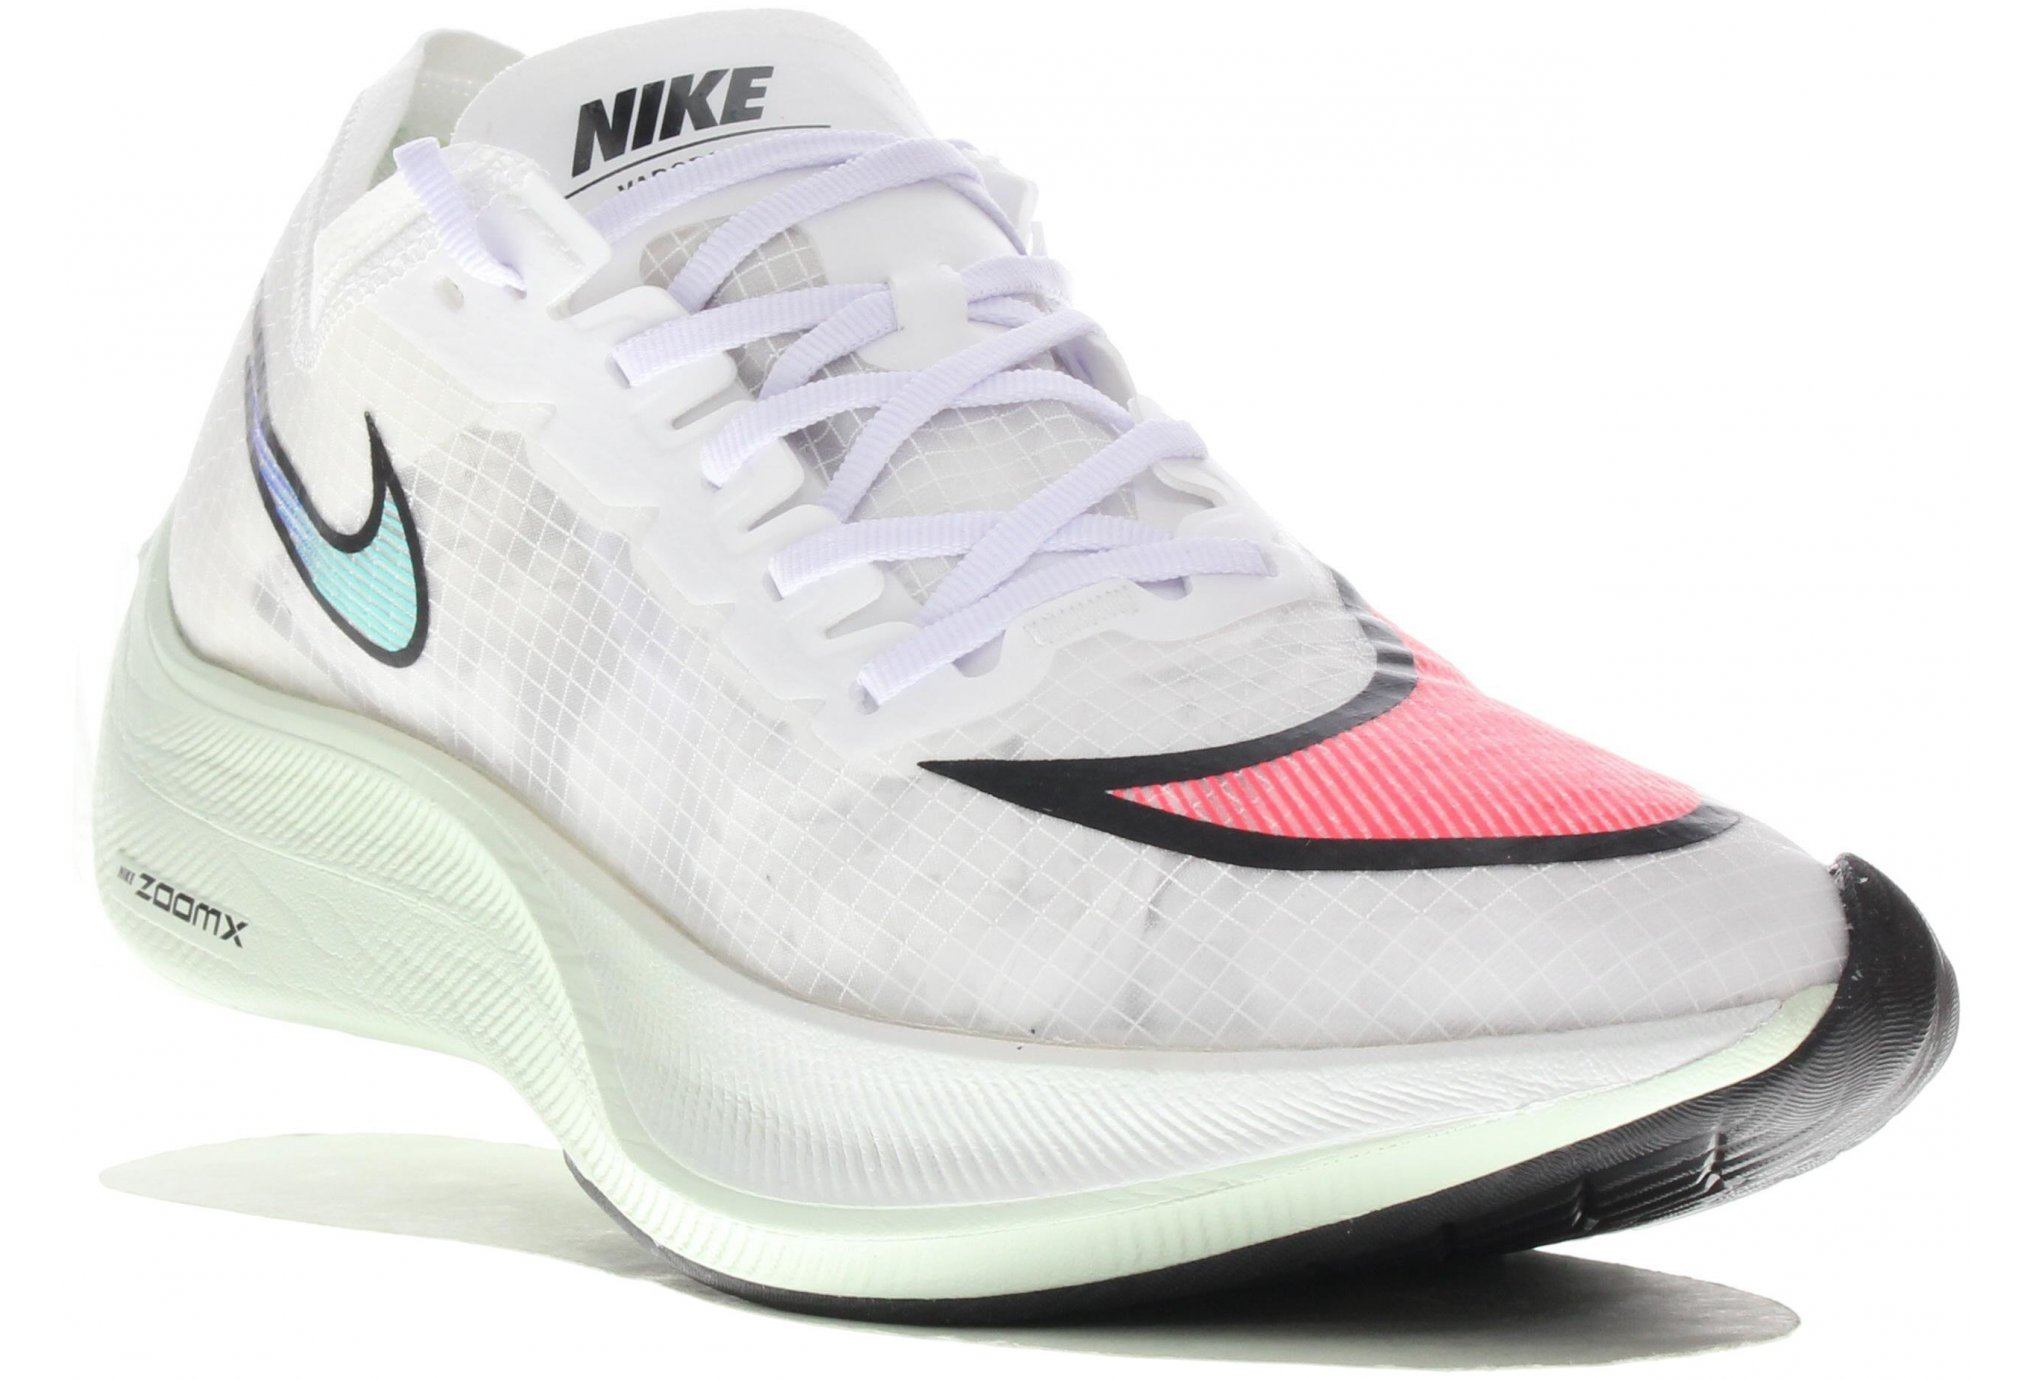 Nike ZoomX Vaporfly Next% déstockage running